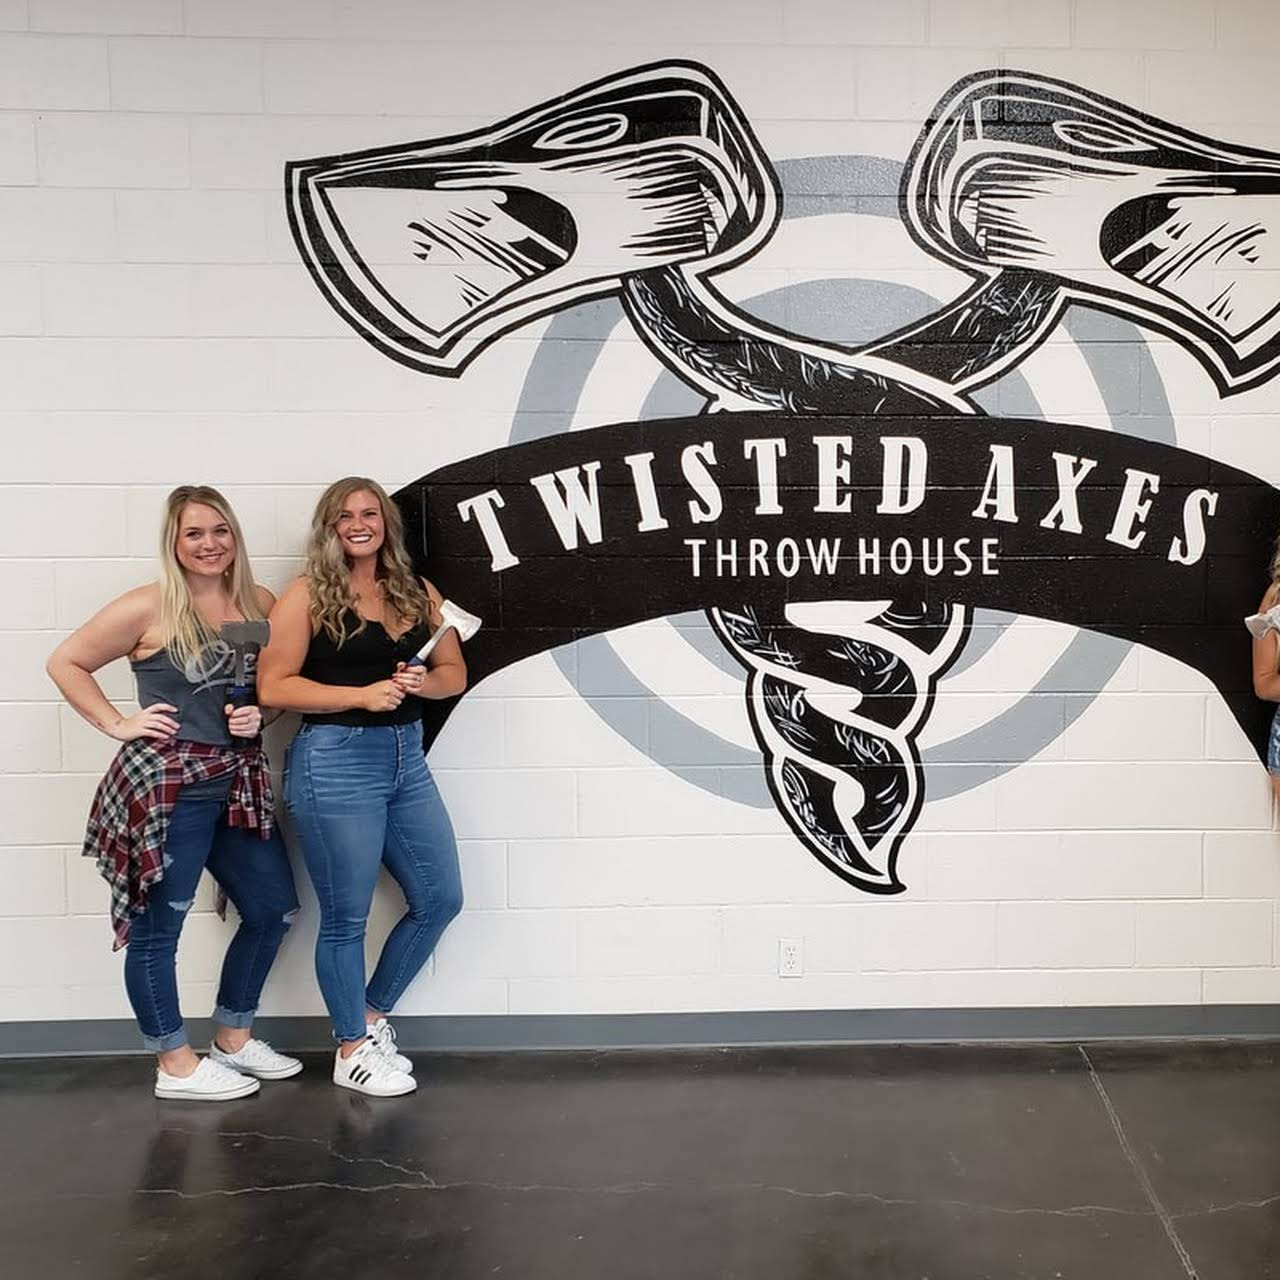 Twisted Axes Throw House - At Twisted Axes Throw House we offer ...